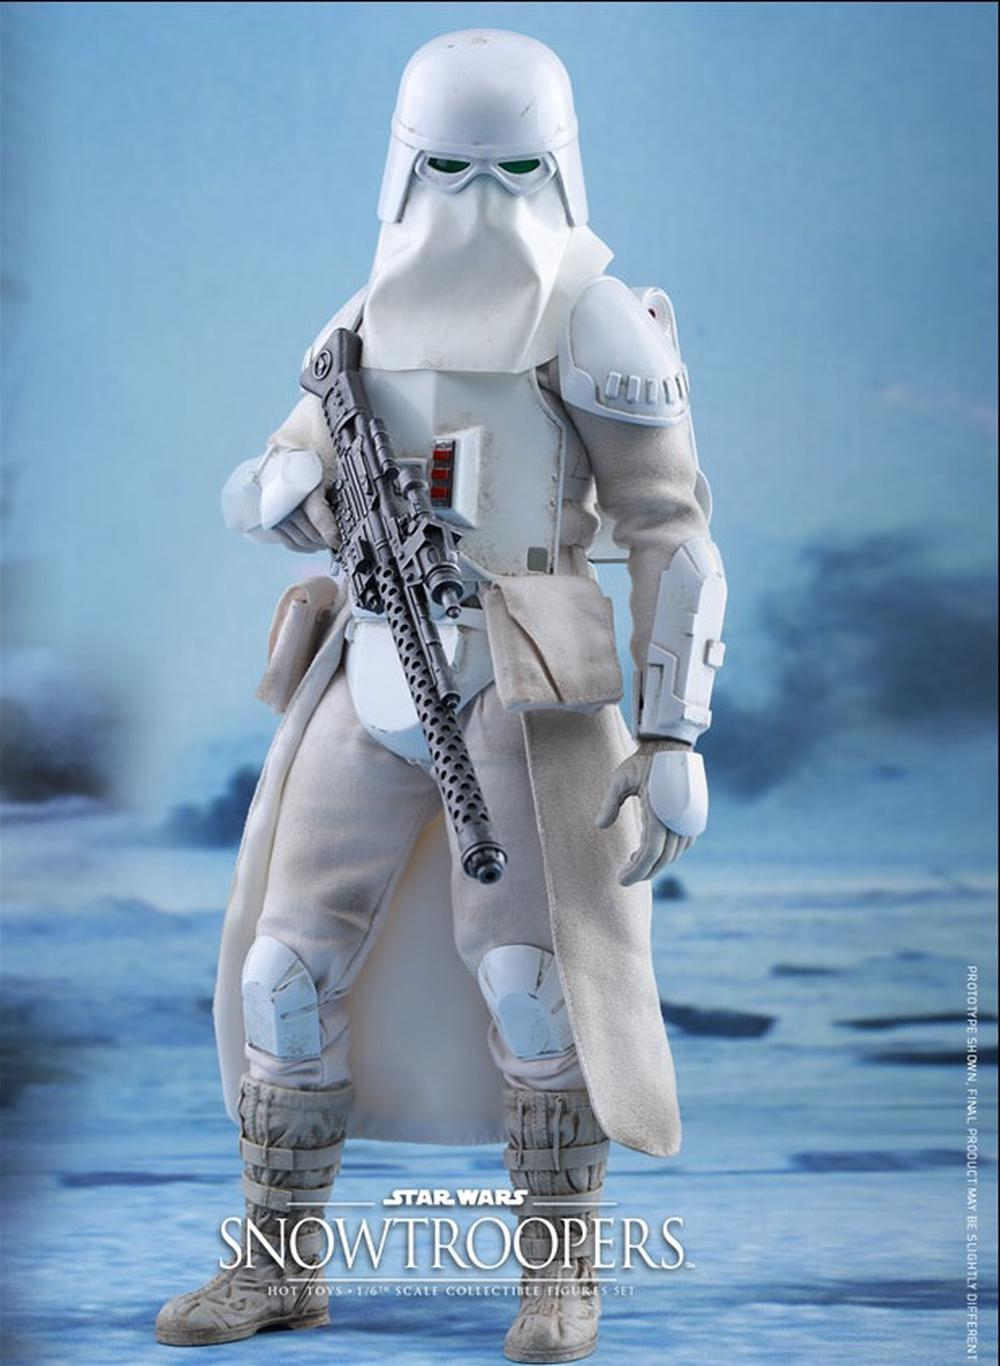 Hot Toys Star Wars Snowtrooper Action Figure Set 16 Scale Buy 1 6 Online At The Nile